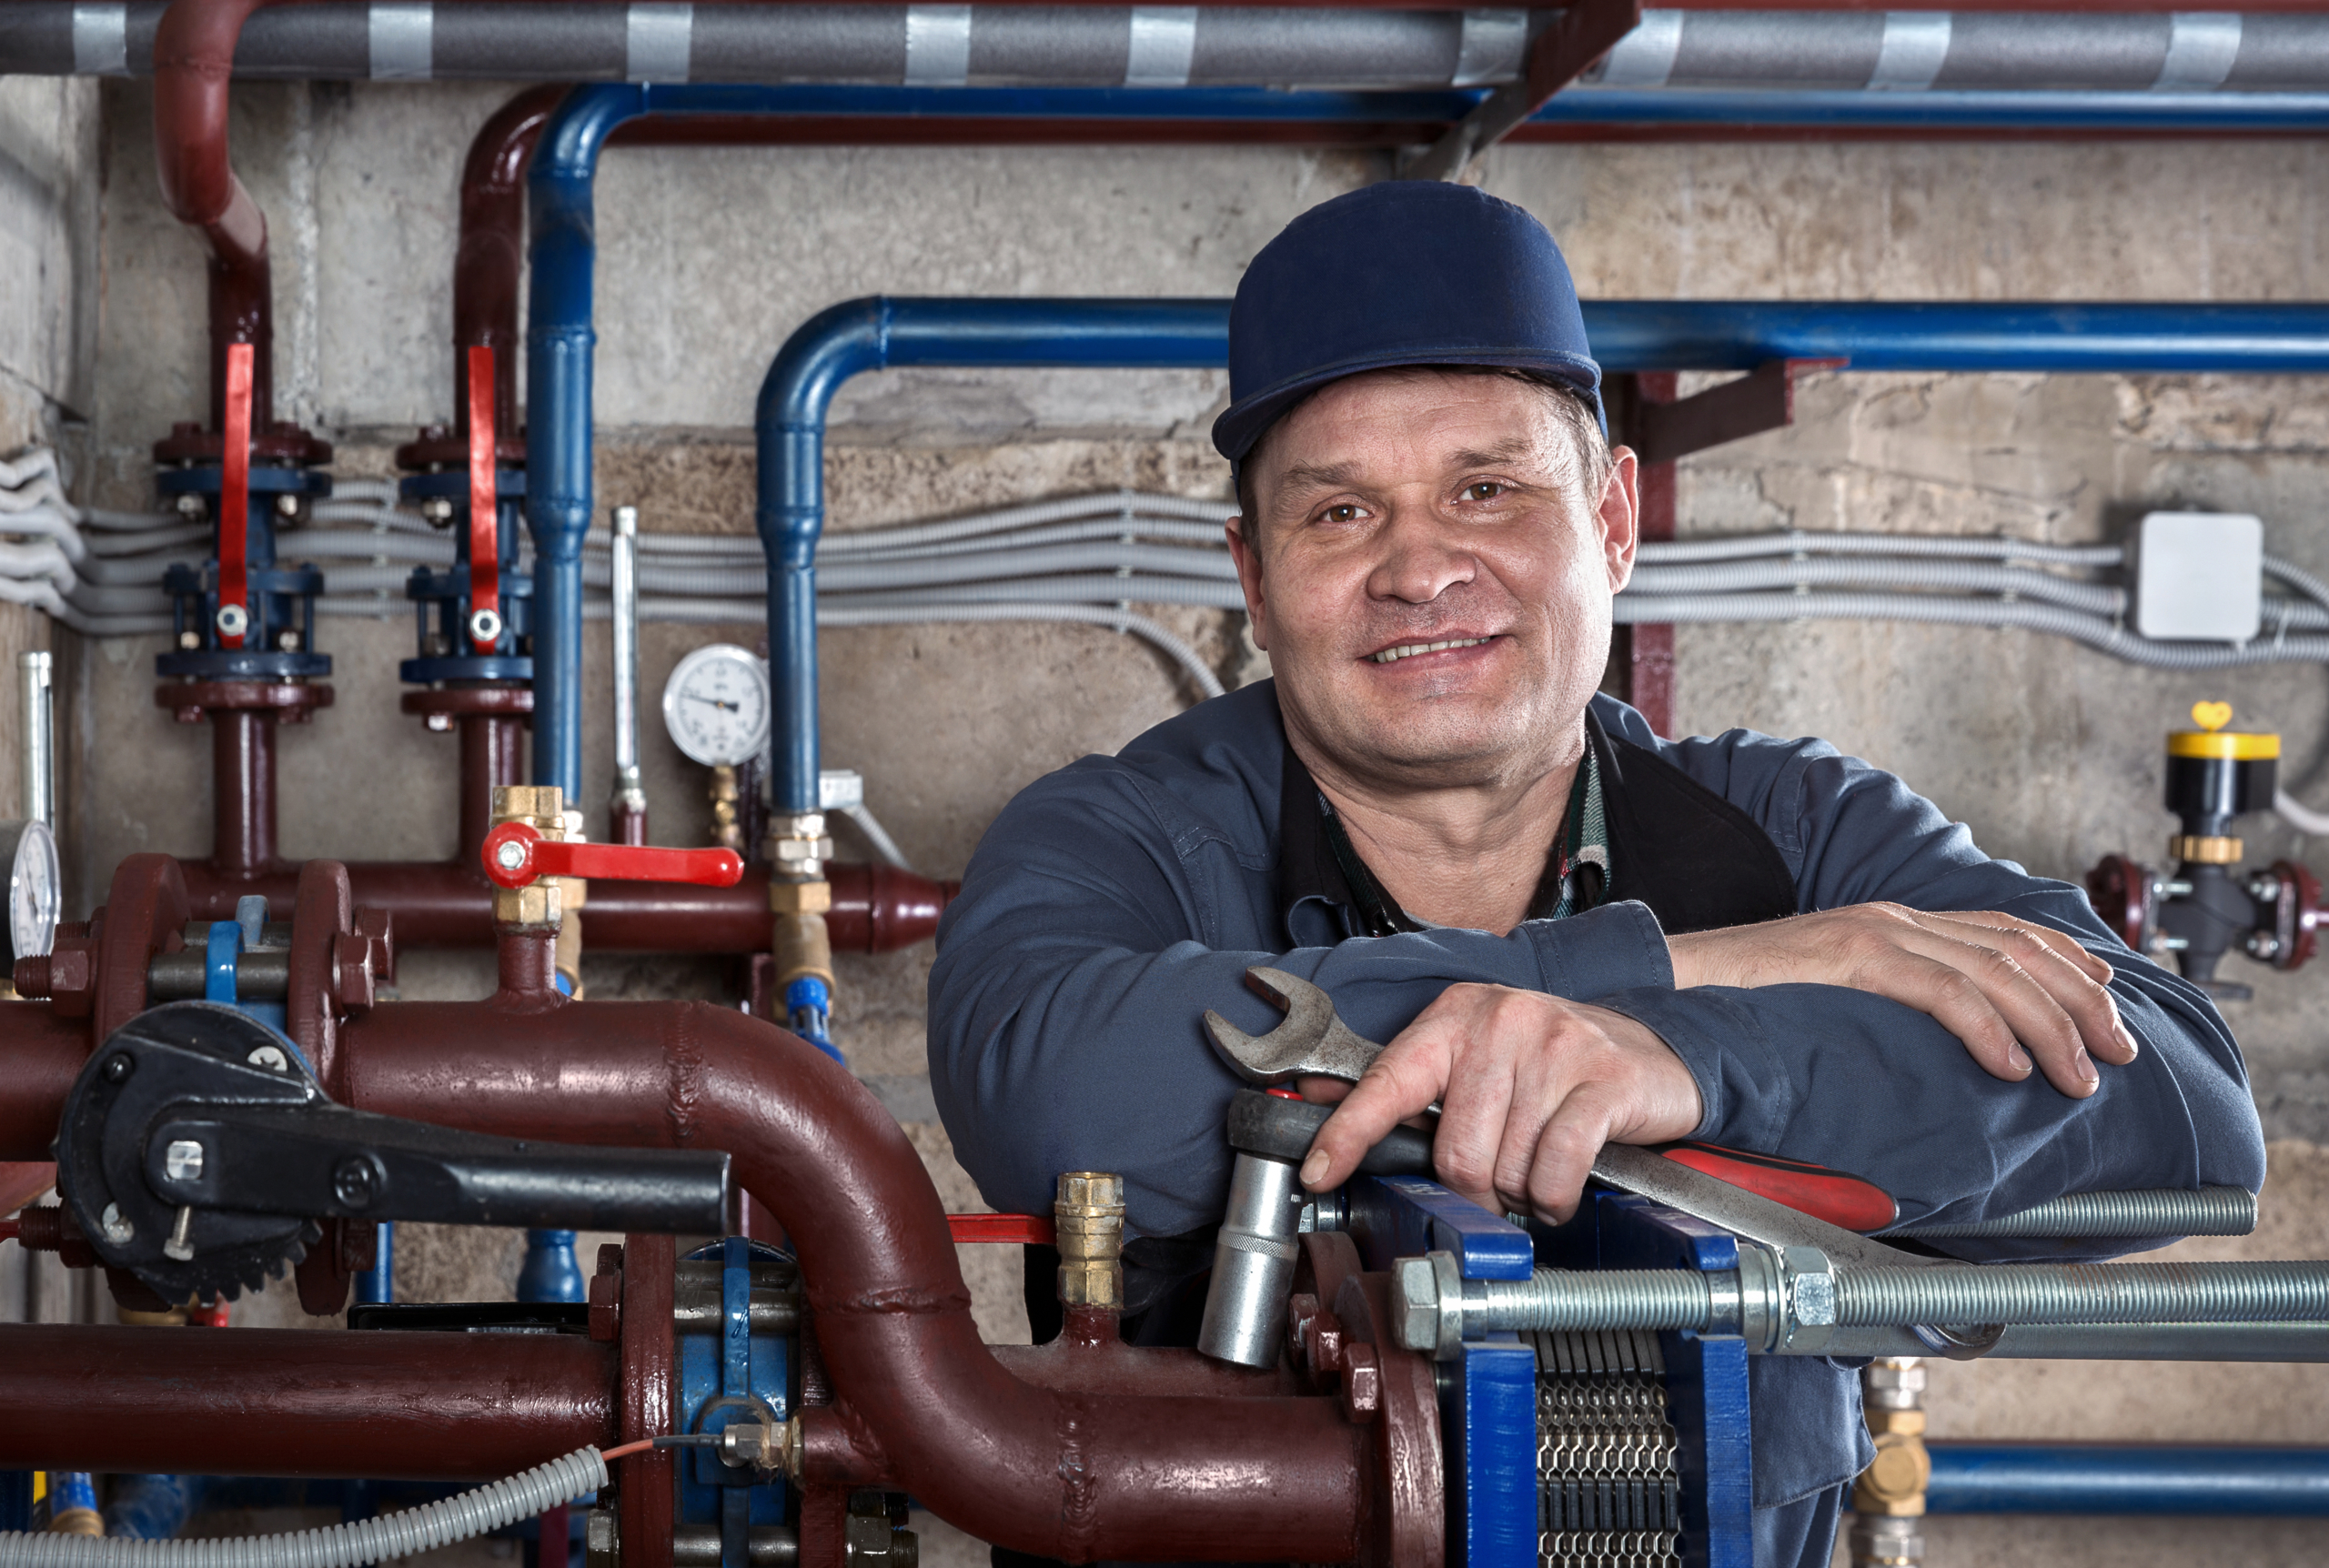 Portrait plumbing engineer.